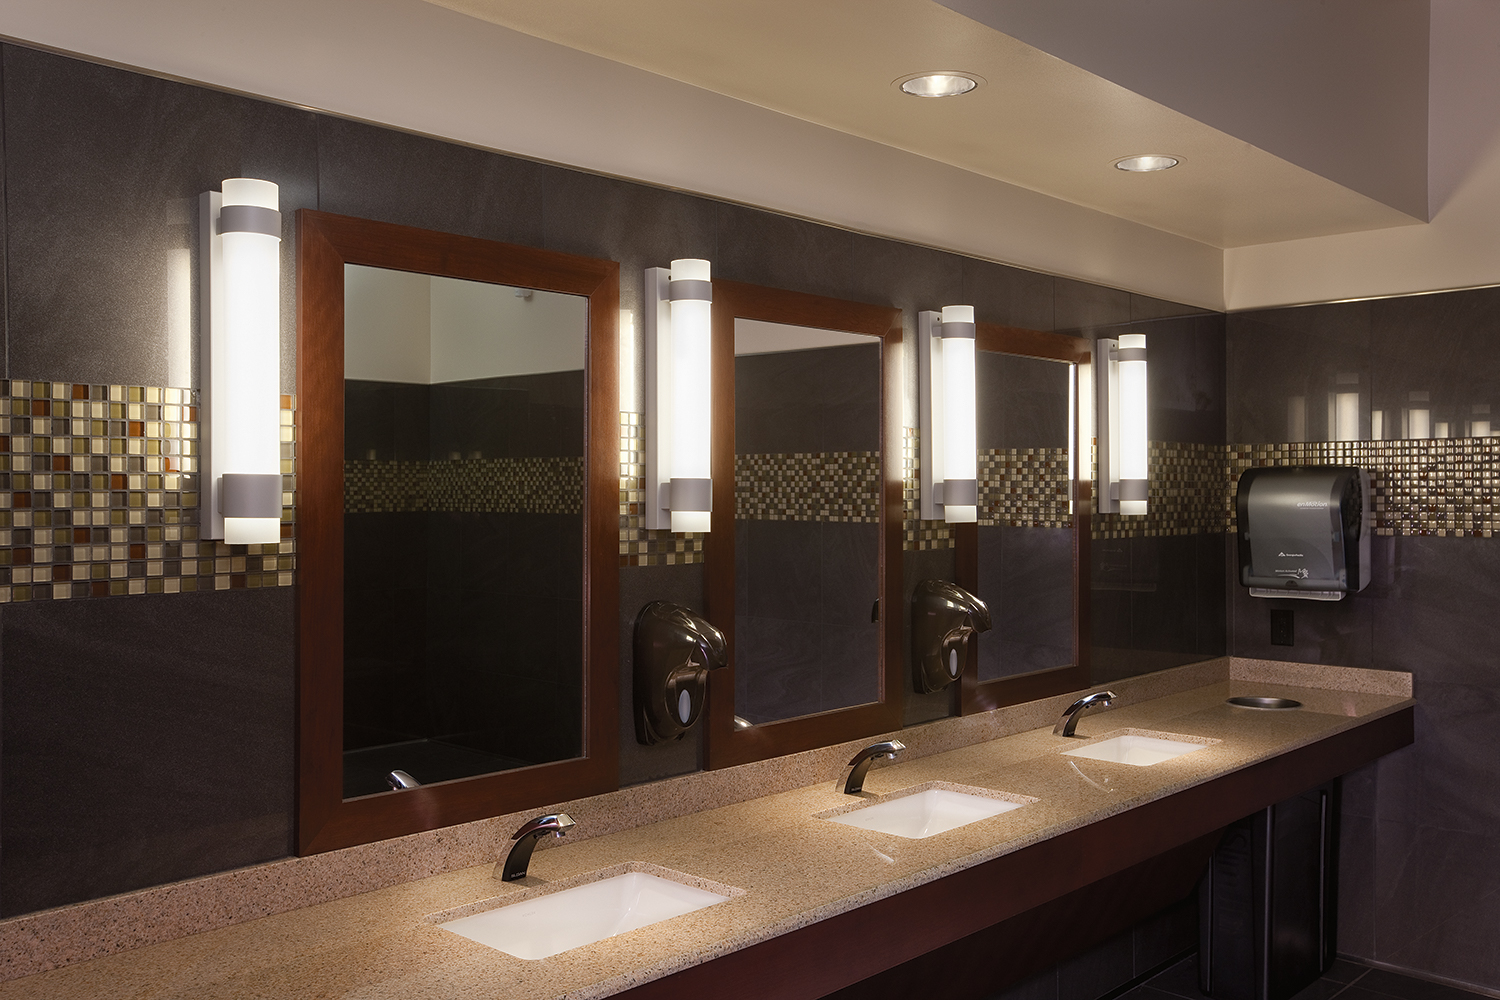 Flambeau vanity light fixtures mounted vertically between mirrors in a modern public restroom